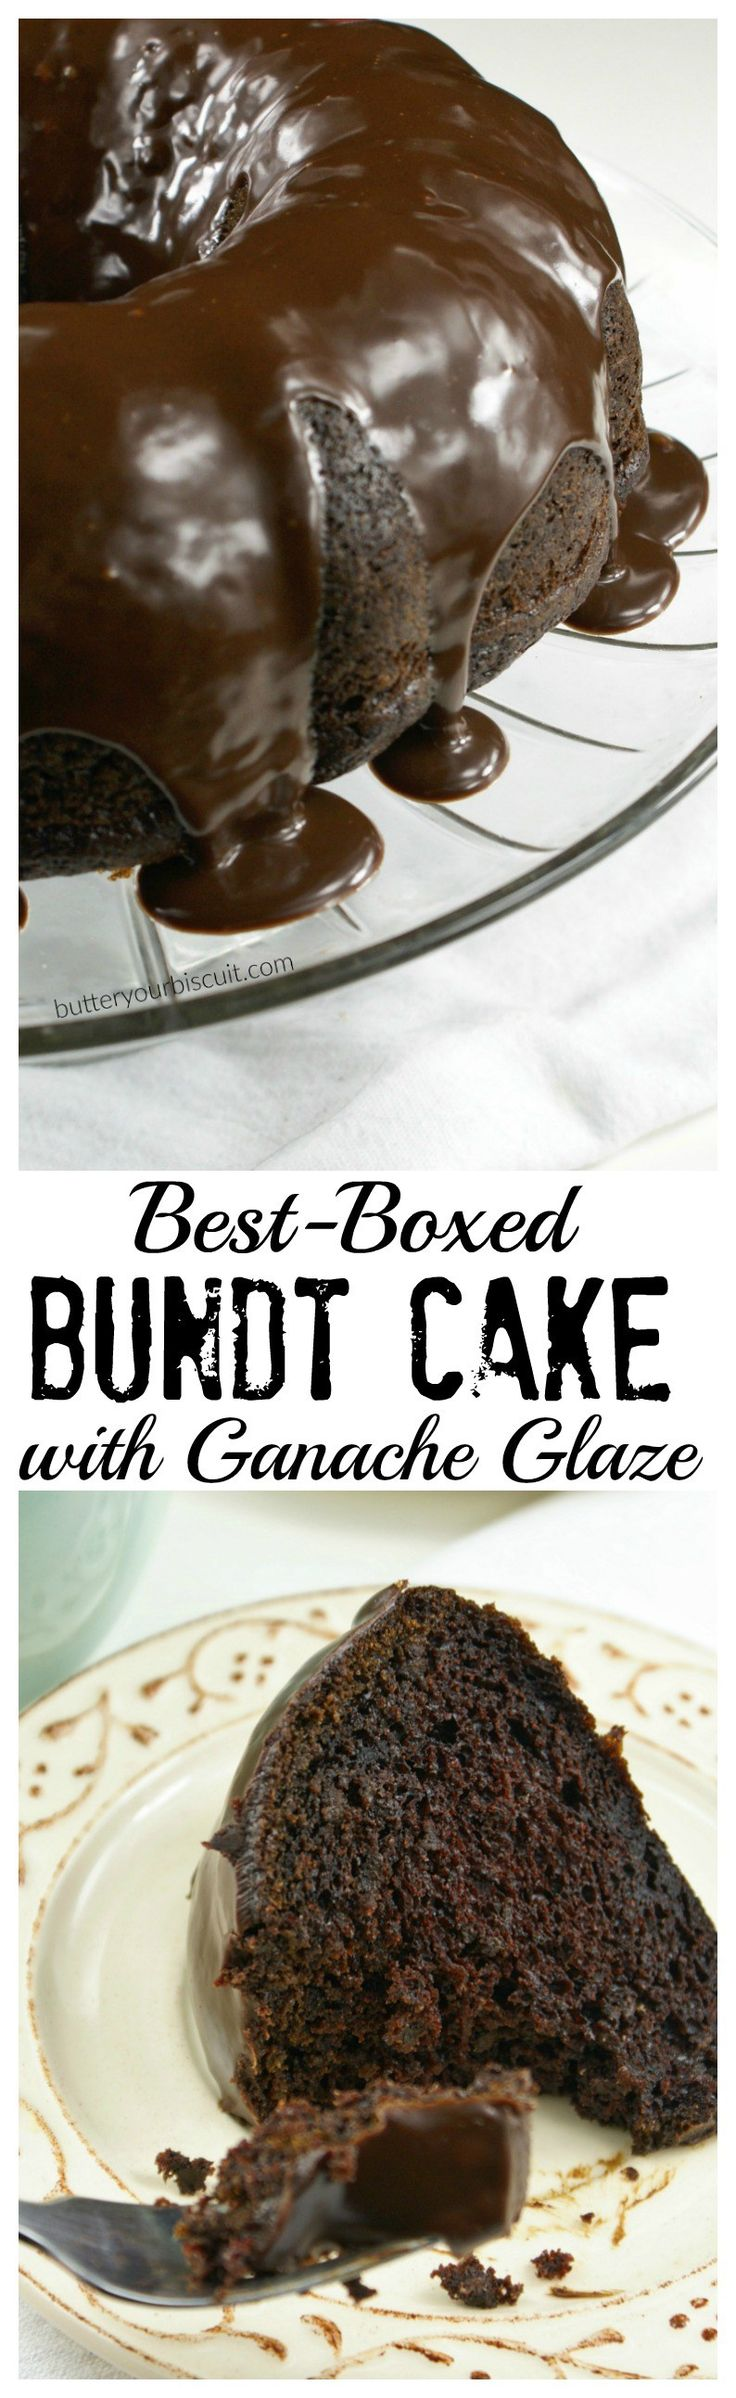 This recipe for The Best Boxed Bundt Cake with Ganache Glaze is rich and moist. The Ganache is silky and smooth and absolutely delicious!